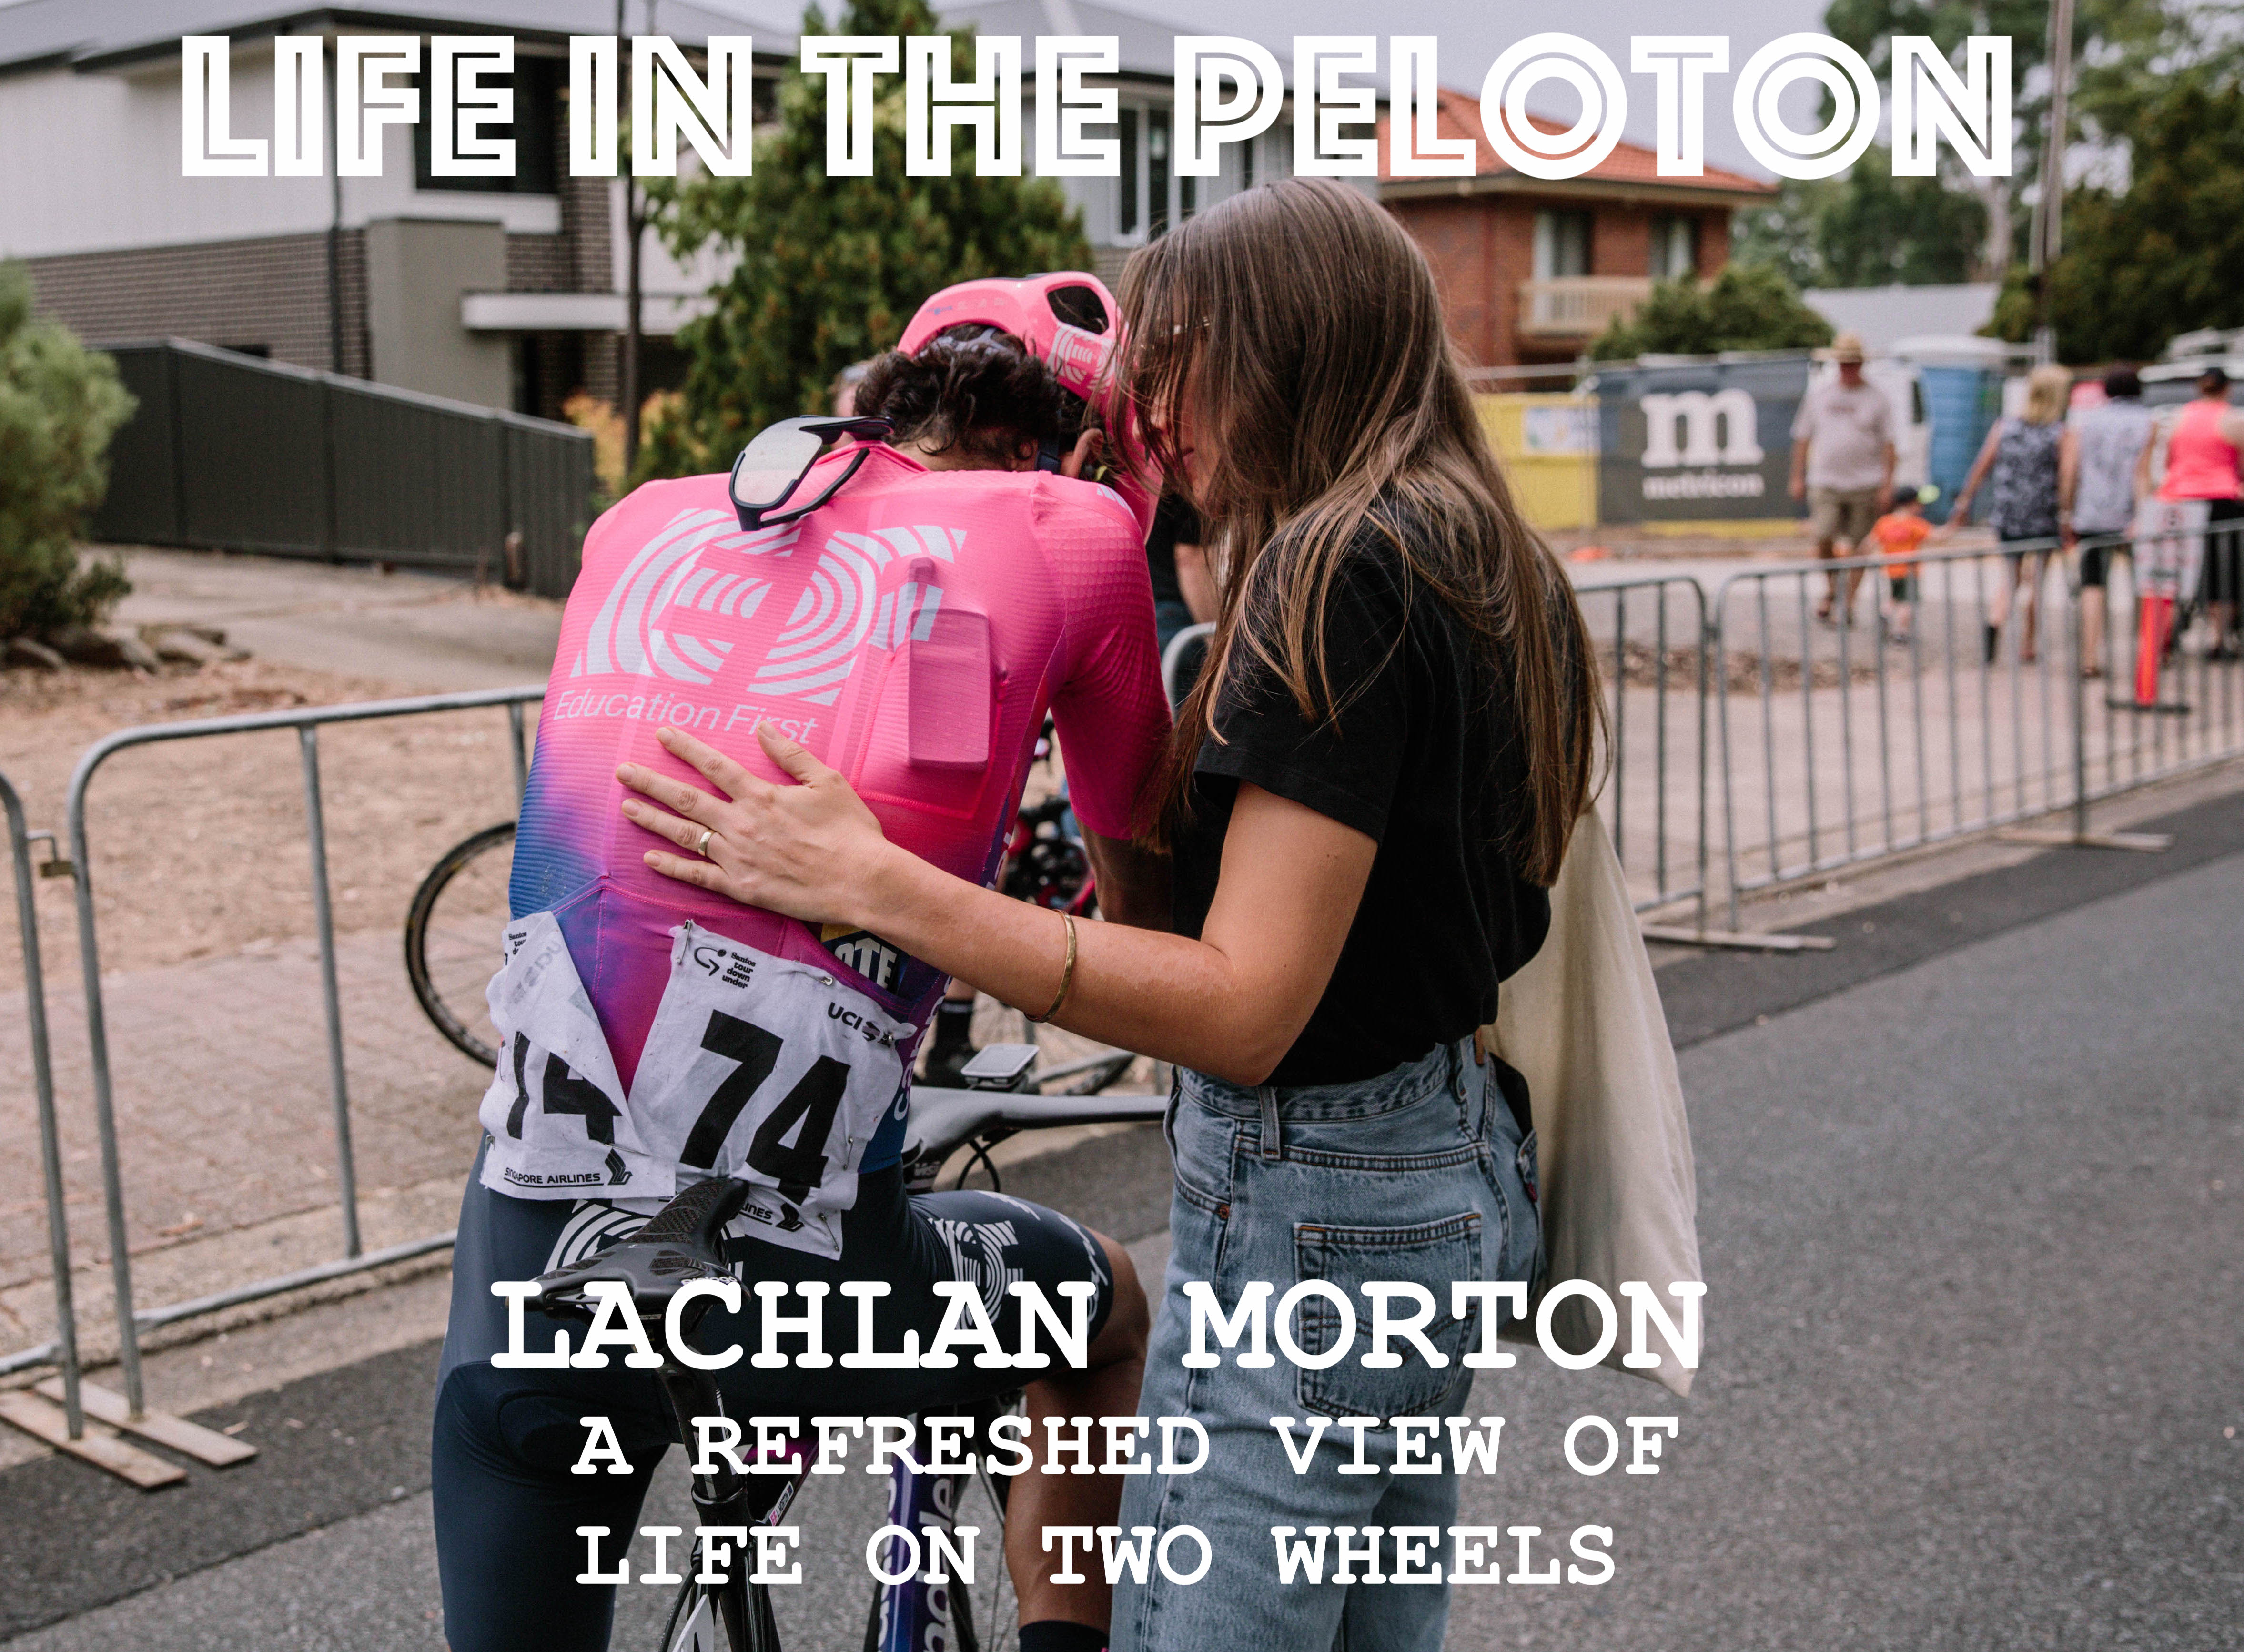 Lachlan Morton – A Refreshed view of life on two wheels